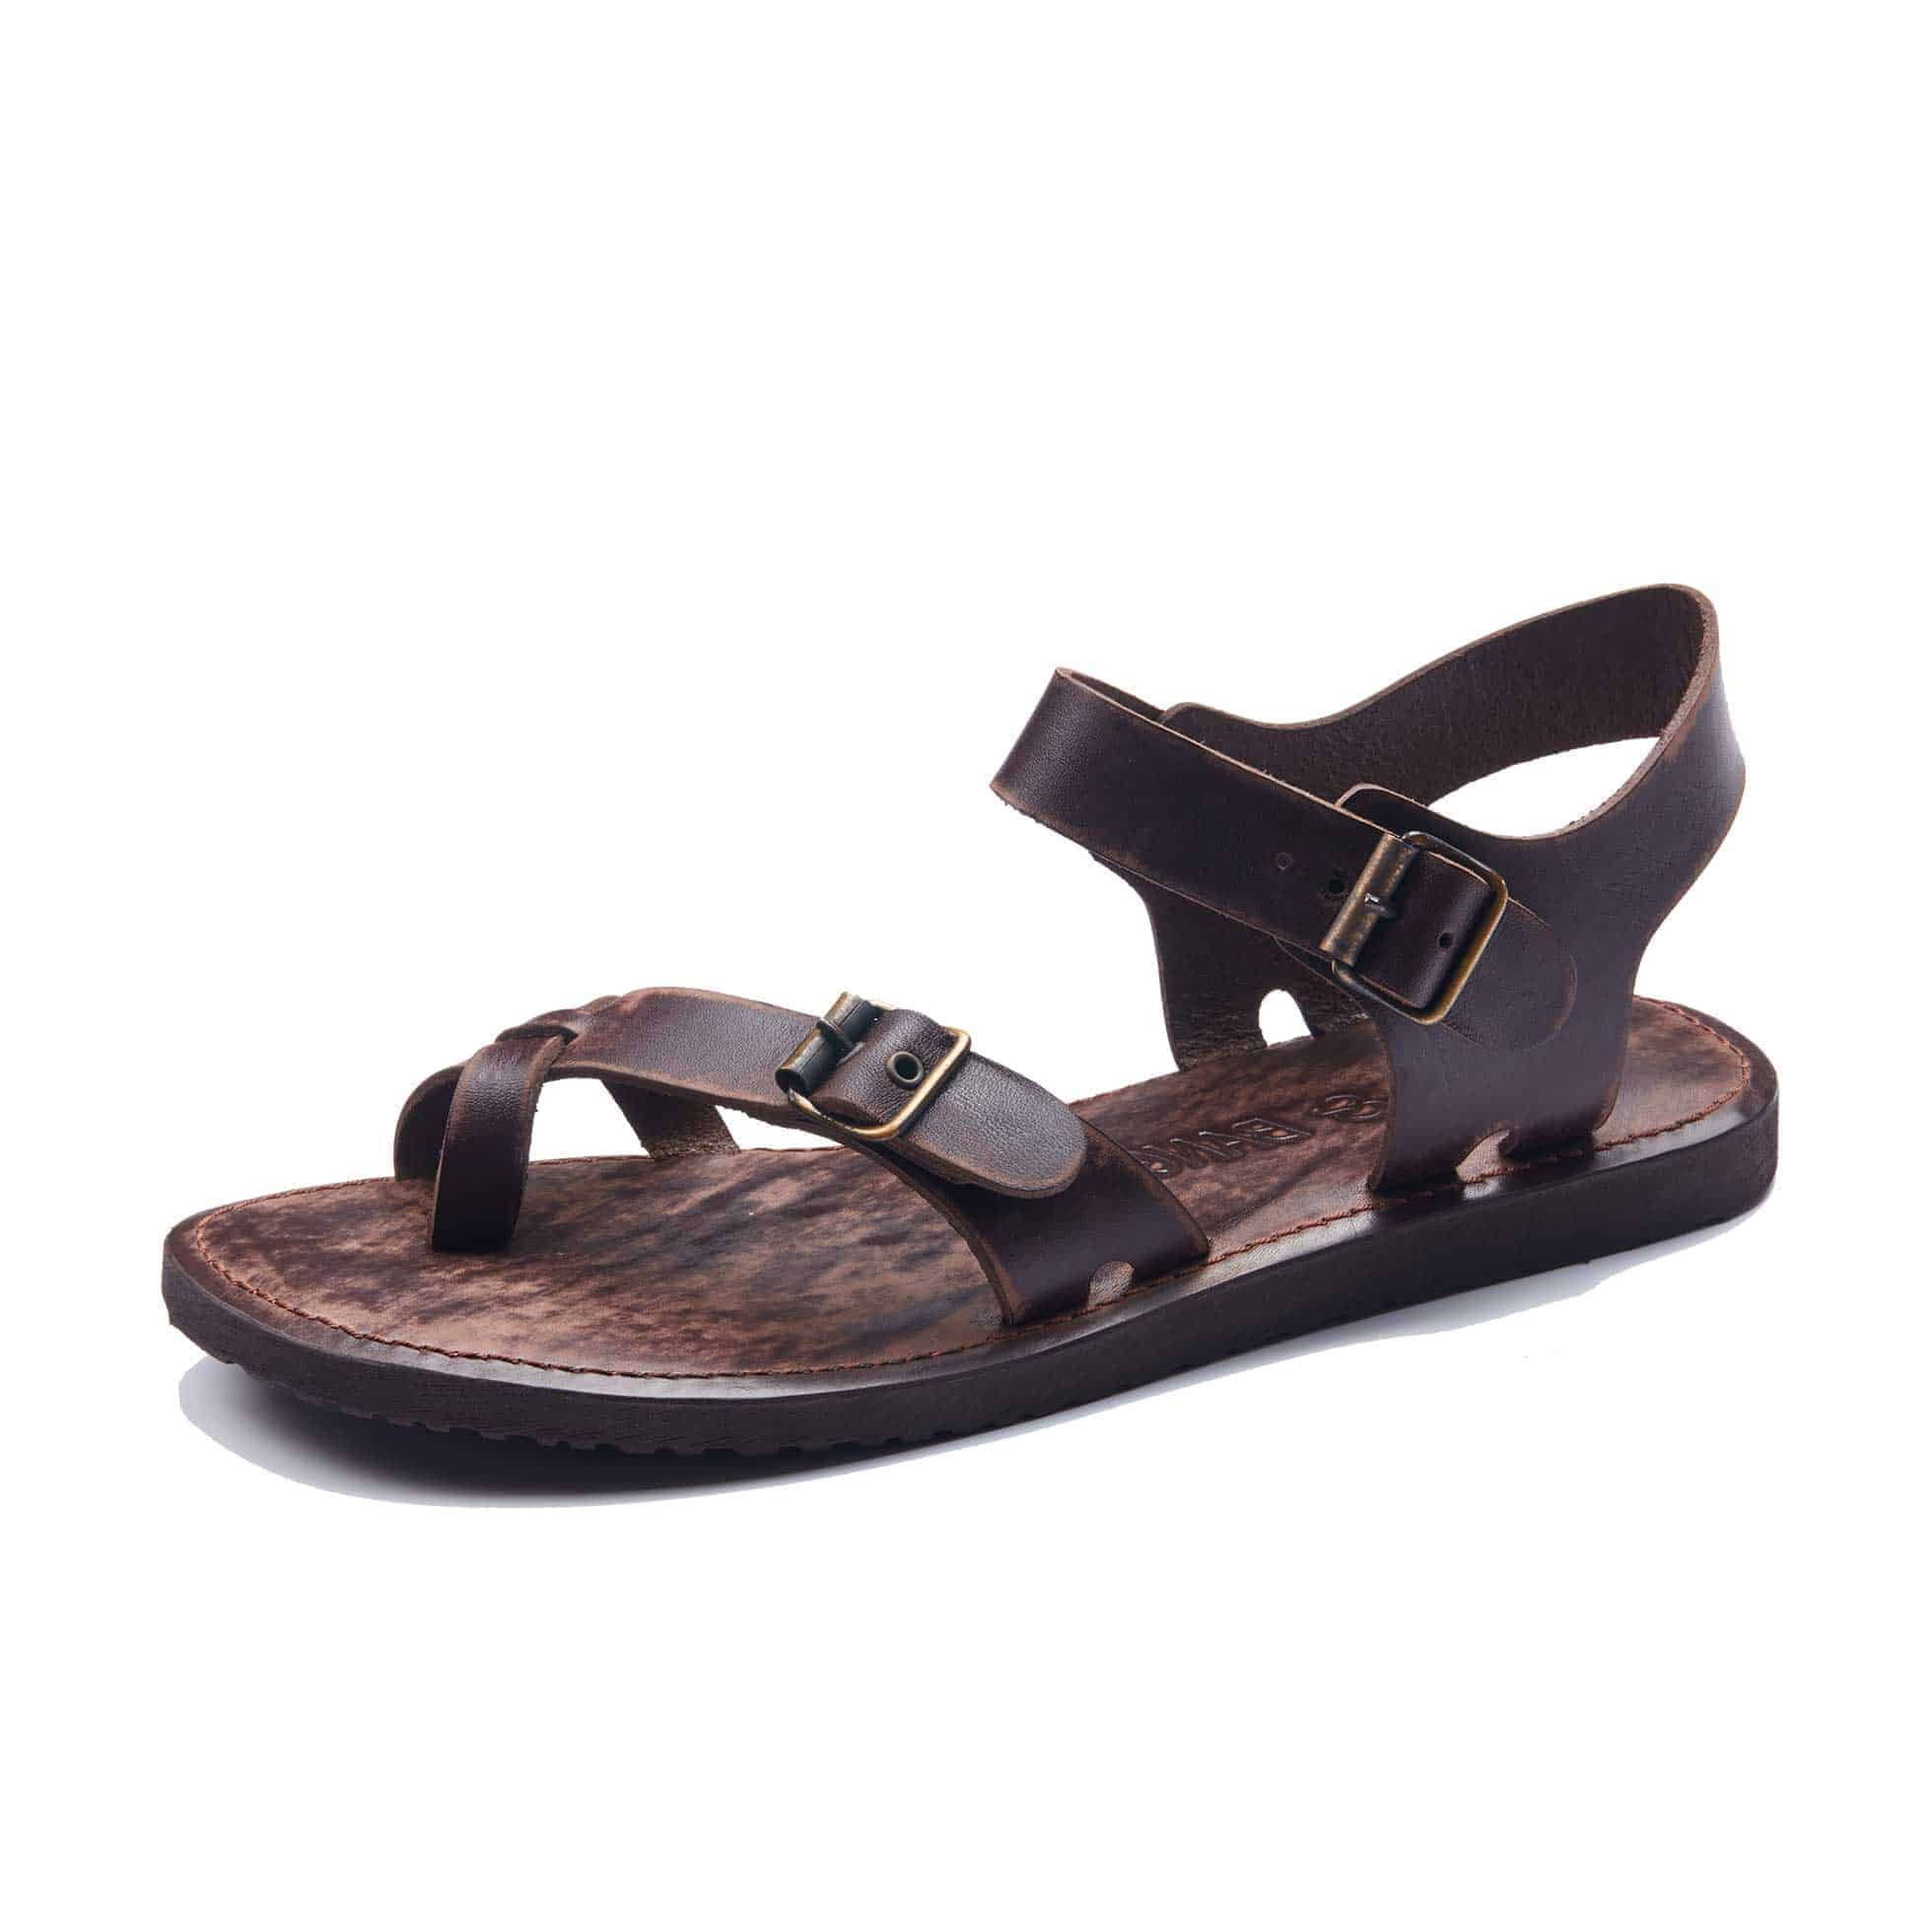 0869fb3949fc Handmade Leather Bodrum Sandals- Best Mens Strappy Leather Sandals.